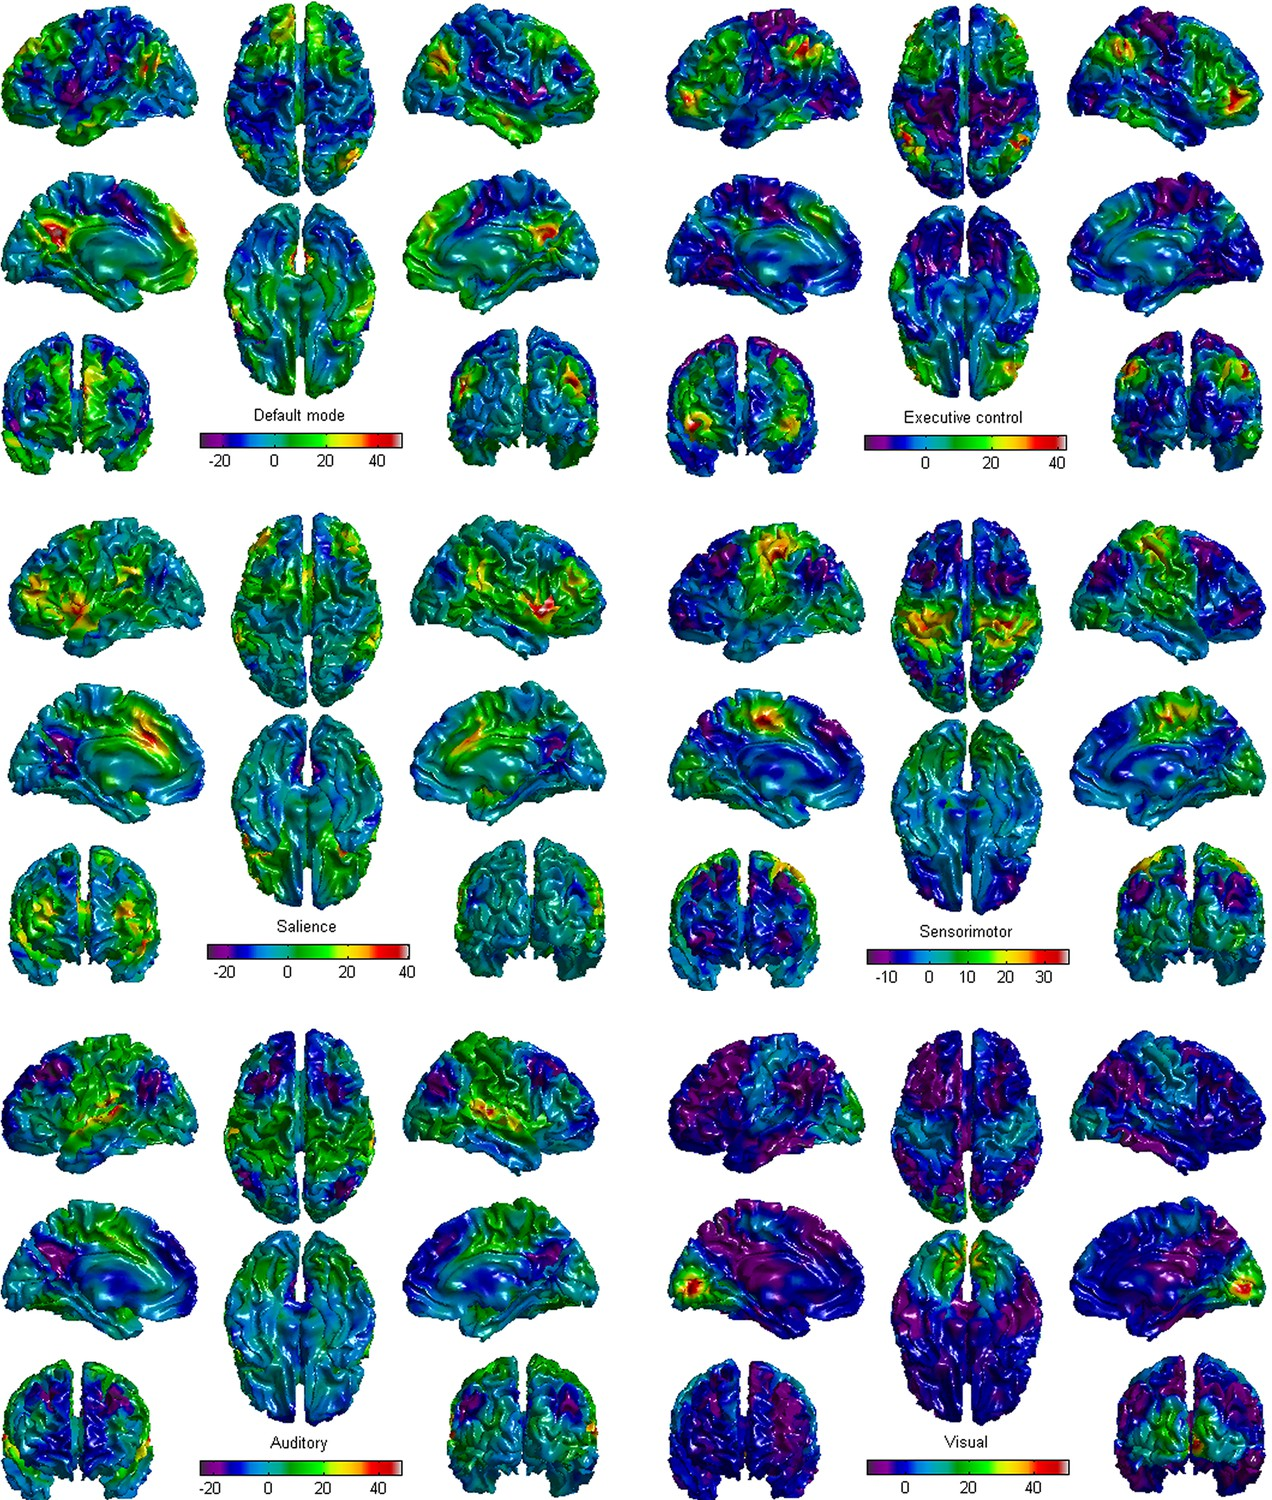 Prognostication Of Chronic Disorders Consciousness Using Brain Snap Circuit 750 The Six Functional Network Templates In This Study